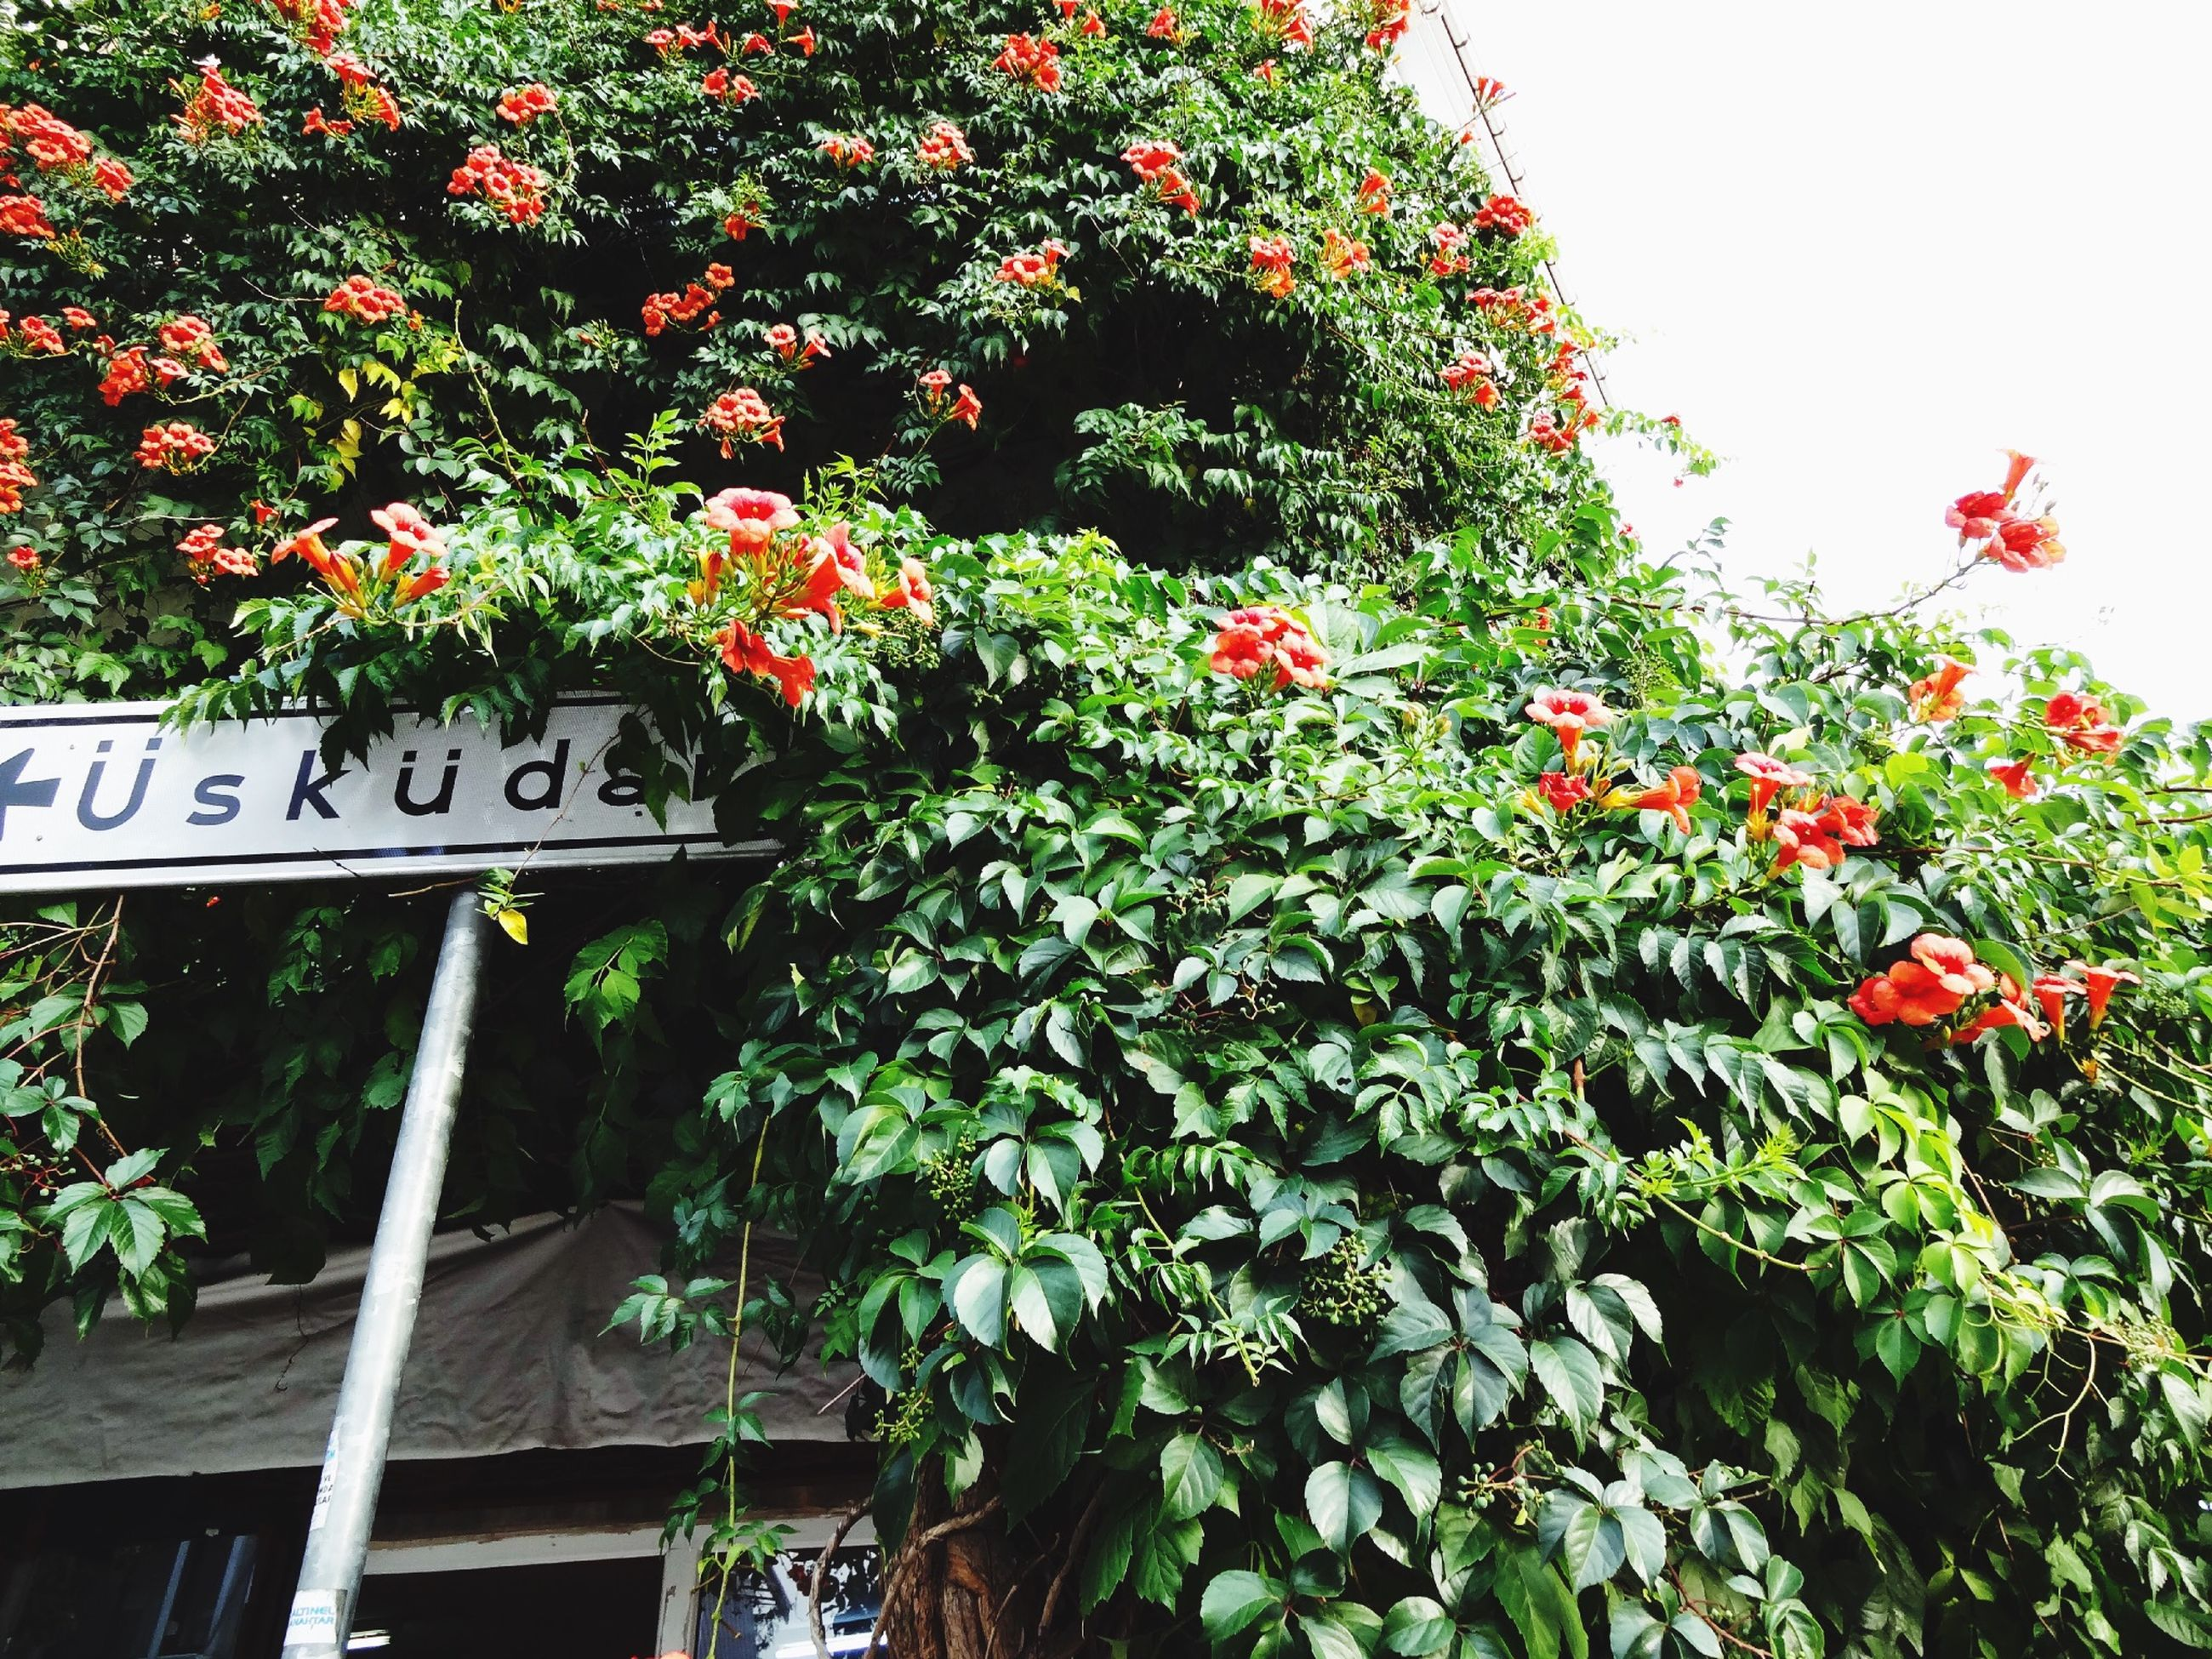 growth, flower, tree, text, low angle view, plant, freshness, leaf, red, built structure, building exterior, communication, clear sky, nature, architecture, western script, branch, green color, day, outdoors